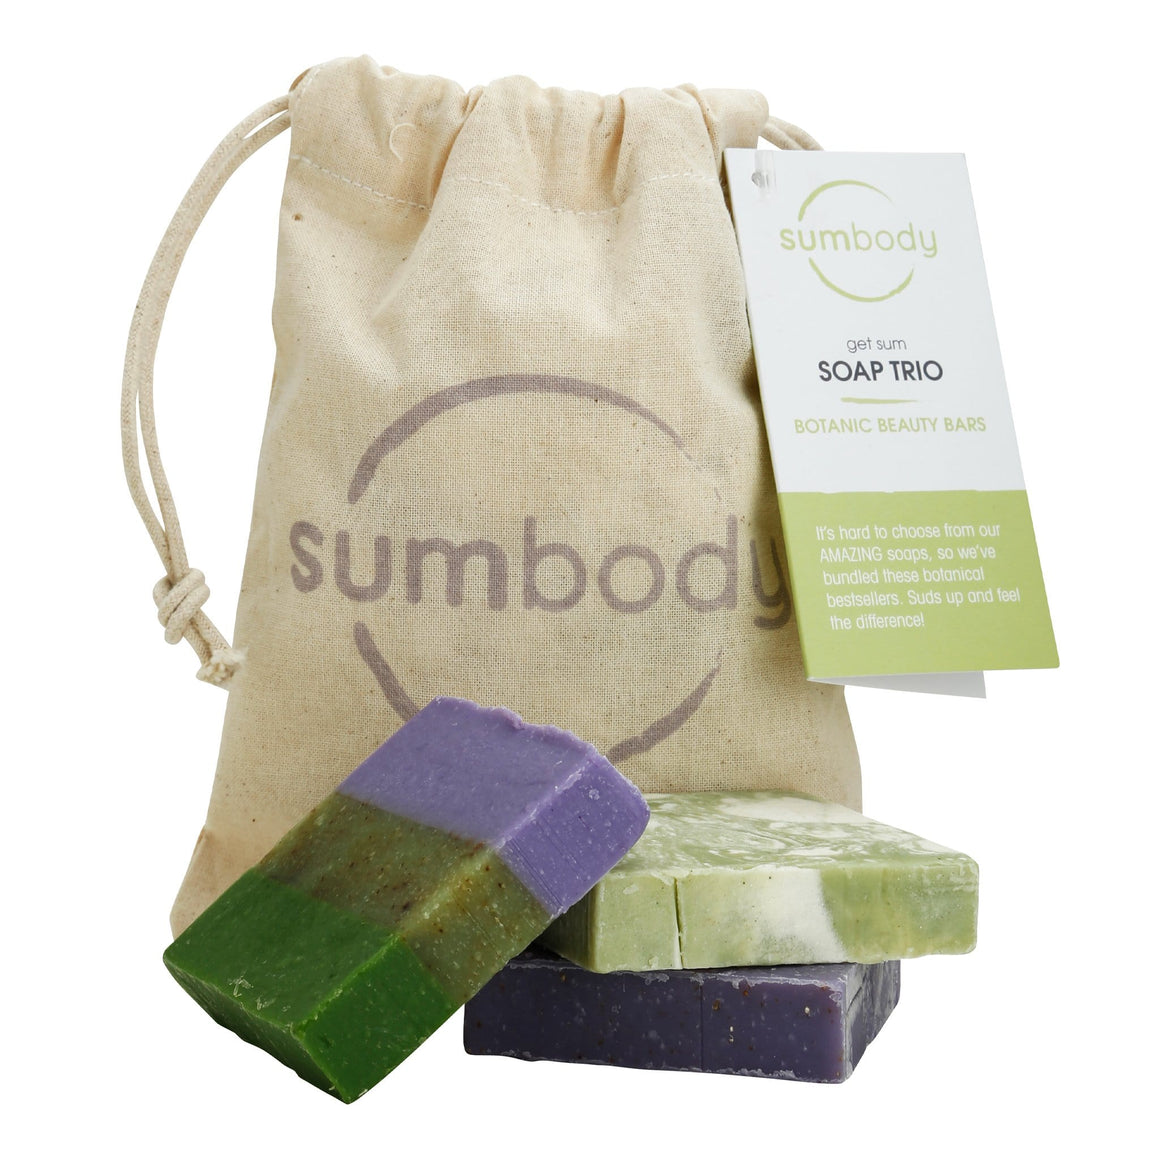 get sum Soap Trio – Botanic Beauty Bars